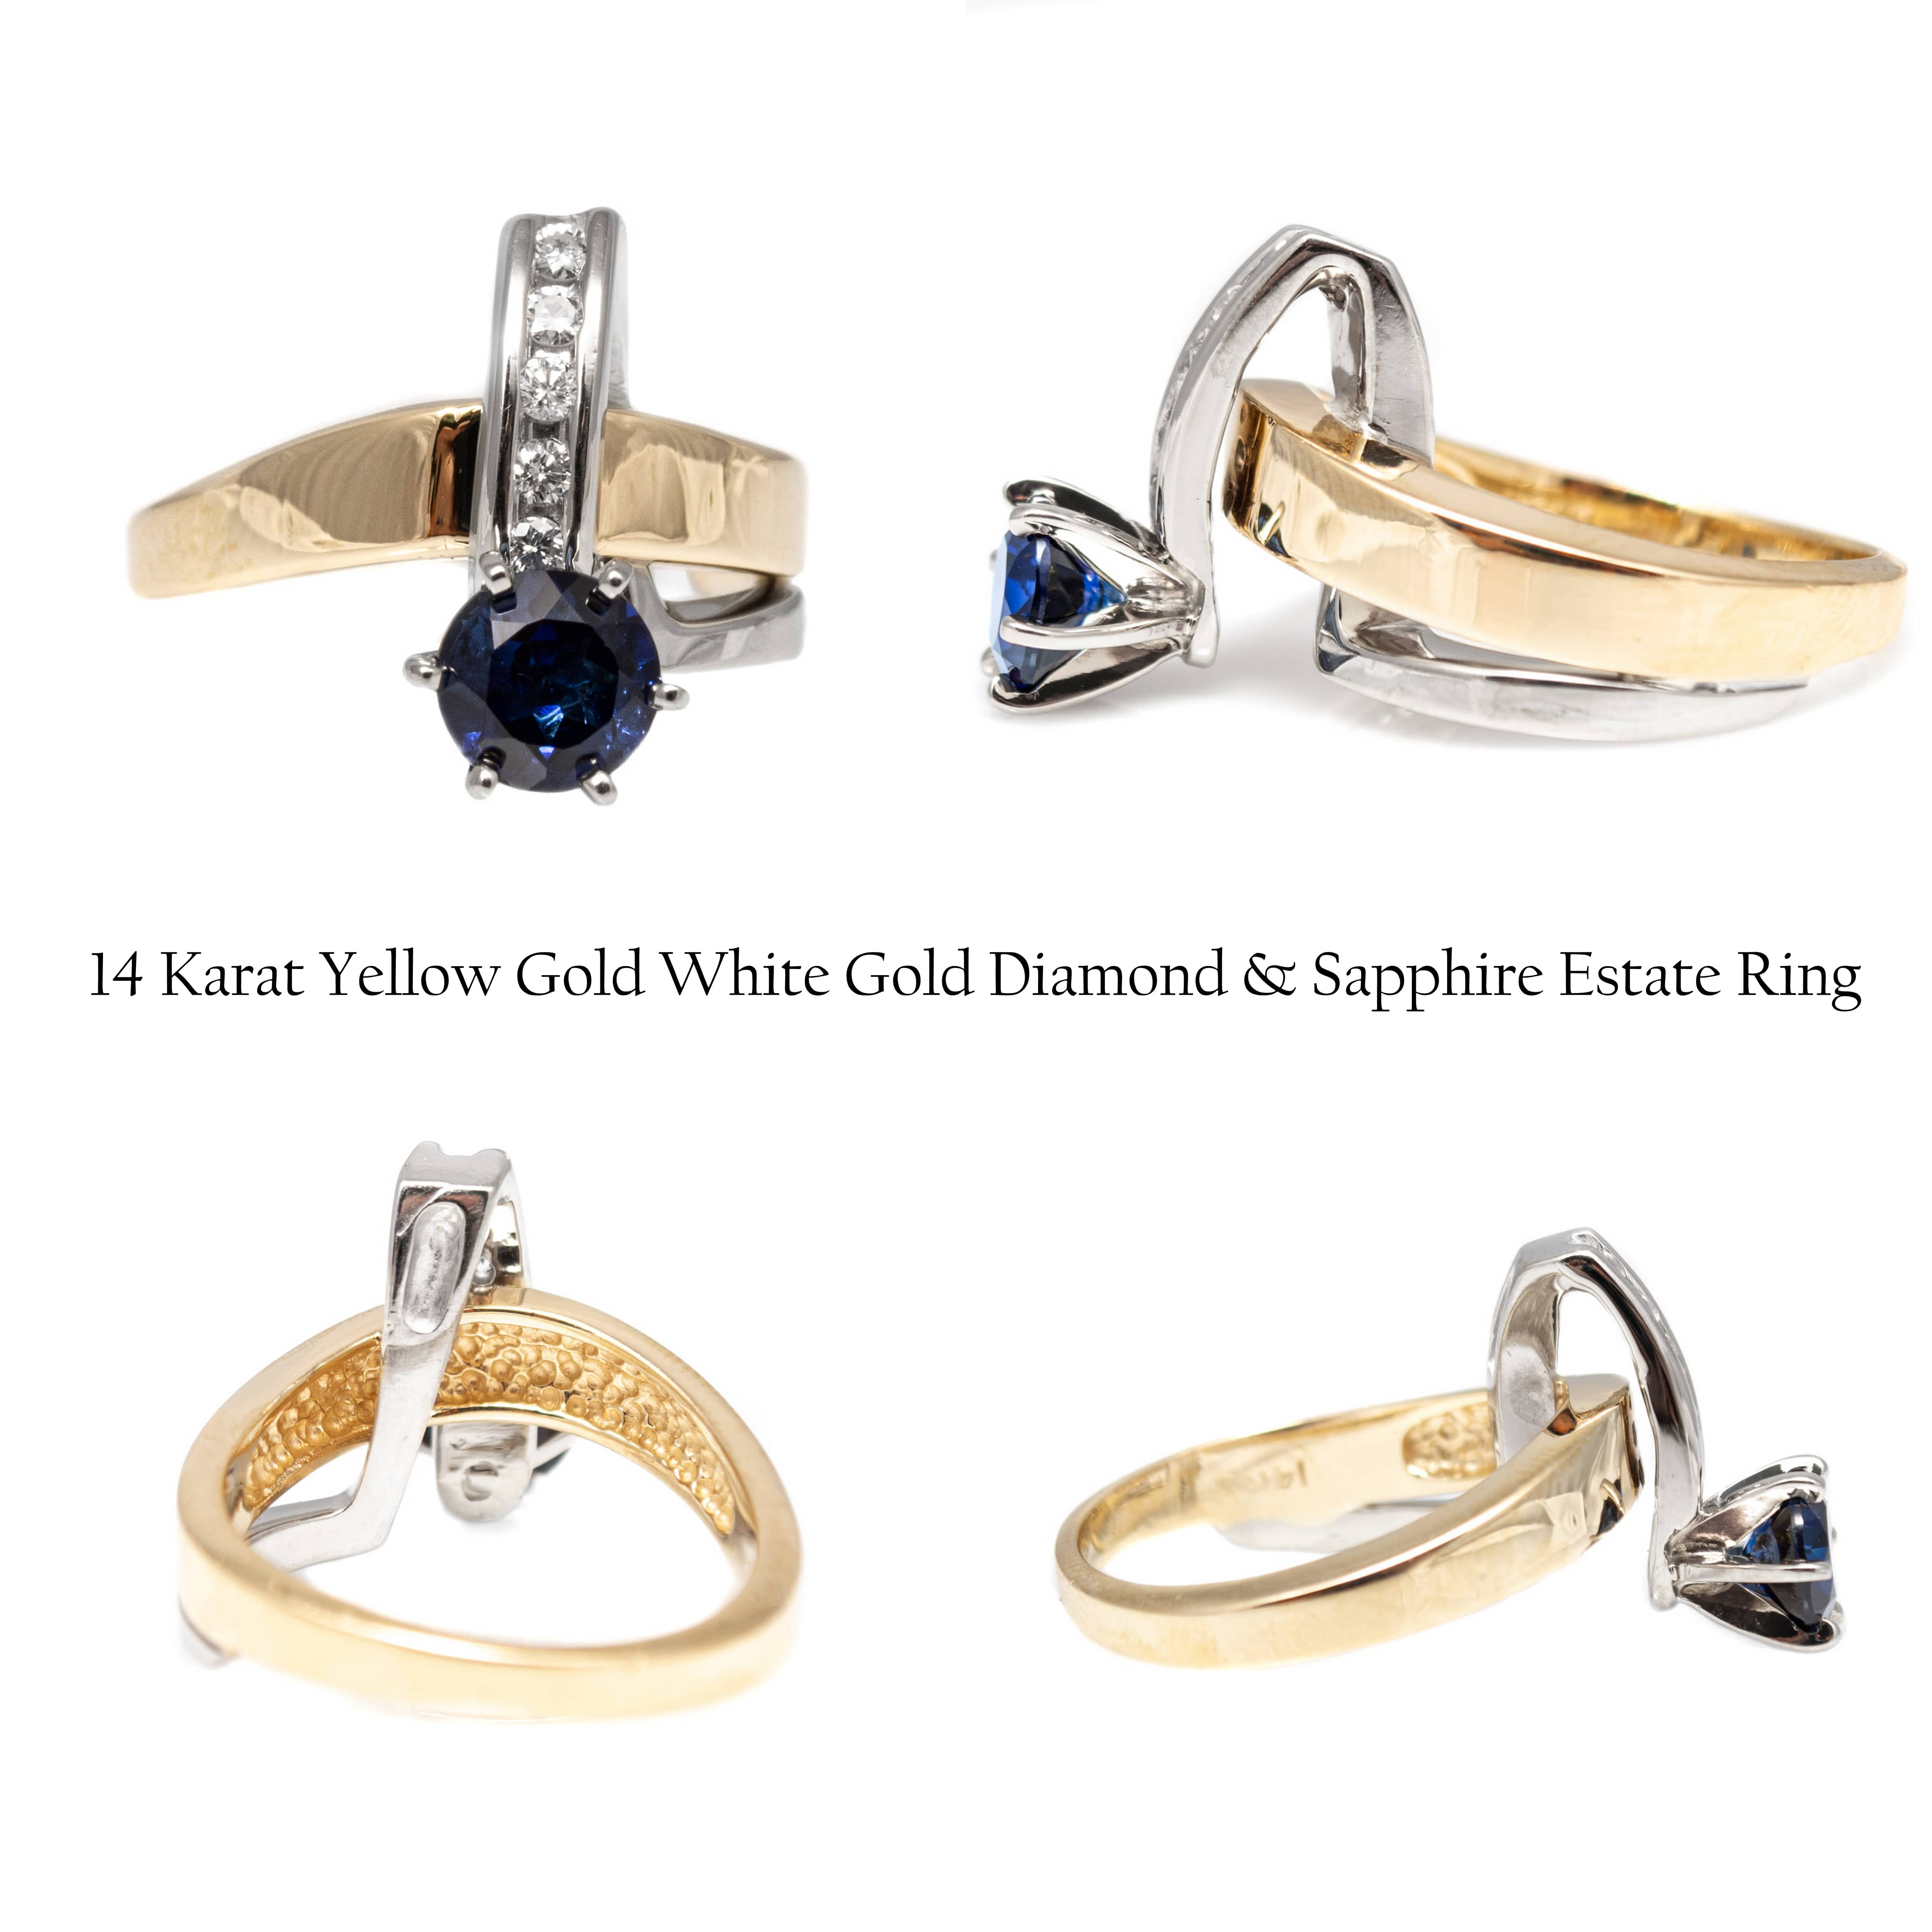 14 Karat Yellow Gold White Gold Diamond